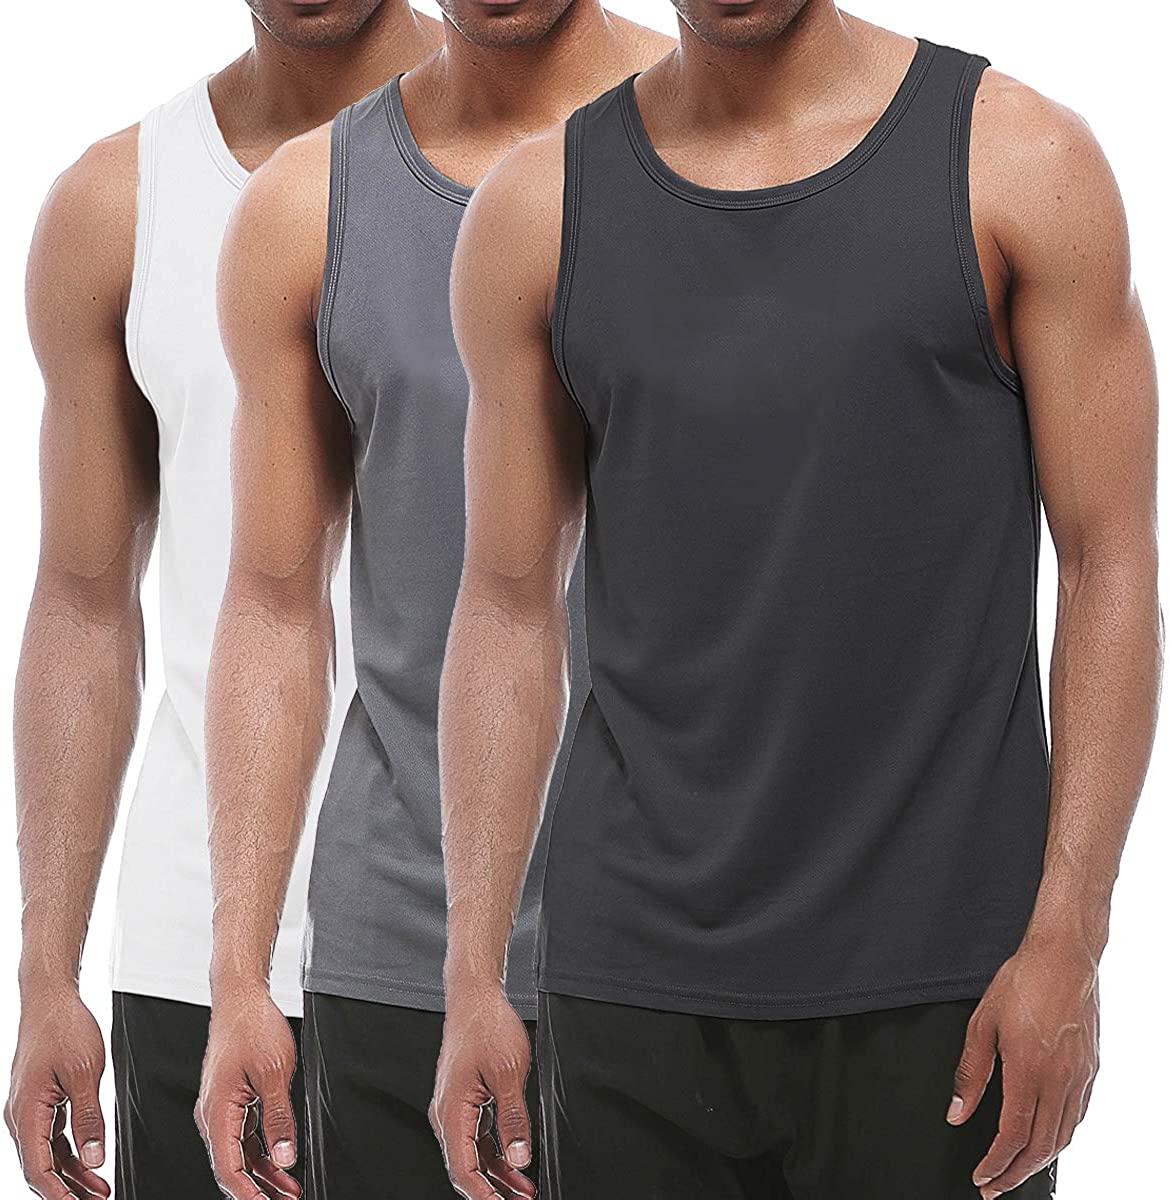 XIHUII Men's Tank Tops New product type - 2021 new 3 Sleeveless Gym Pack Trai Workout